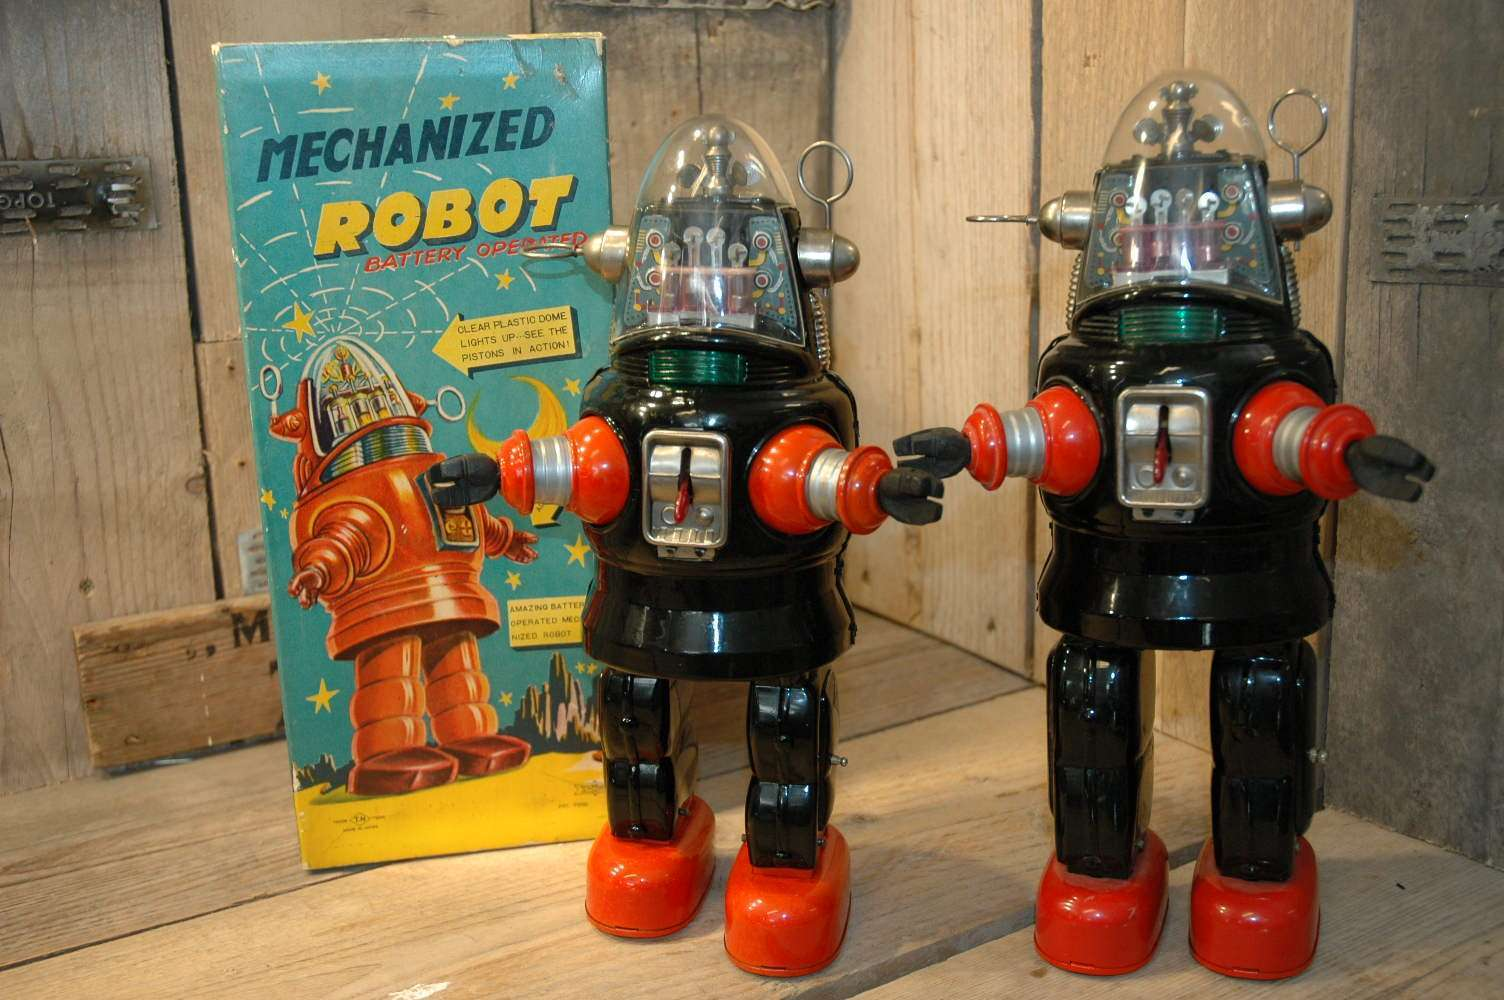 Nomura - Mechanized Robby Robot C-Cell Black